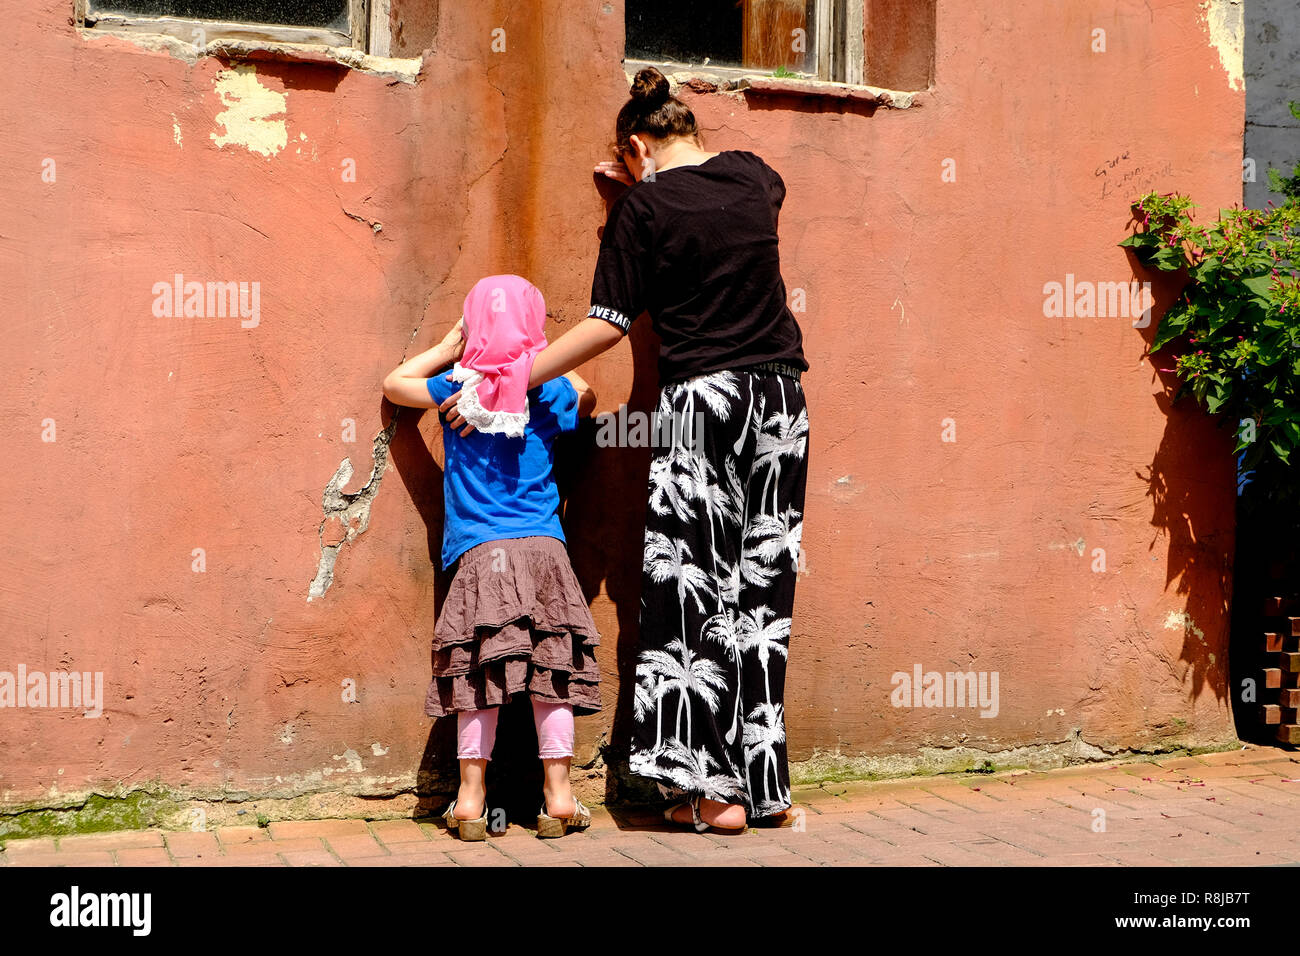 Kids playing hide and seek - Stock Image